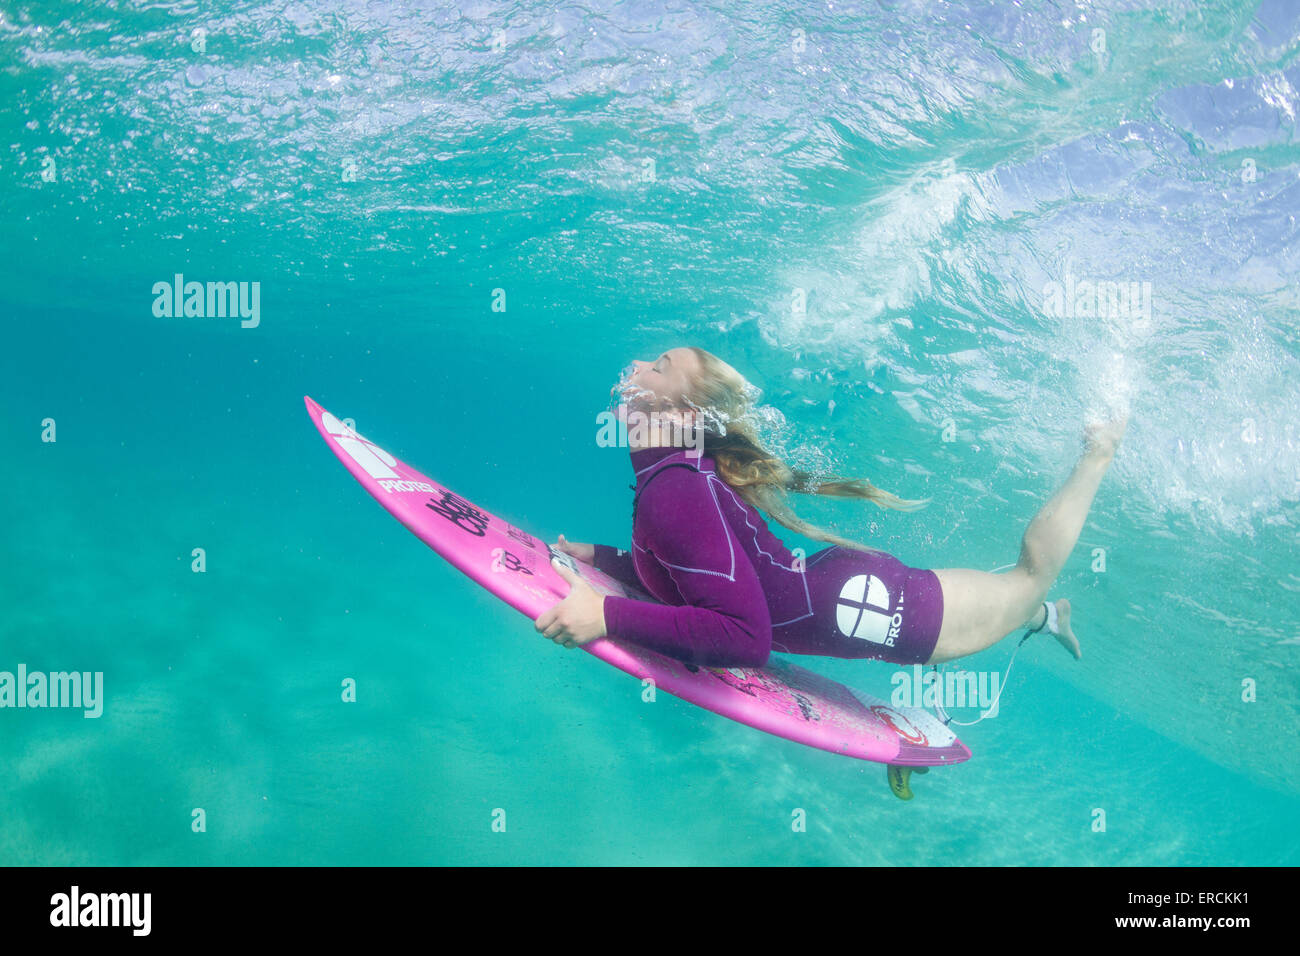 322c899ea0488 Underwater photo of a blonde surfer girl with a short wetsuit duck diving  under a wave